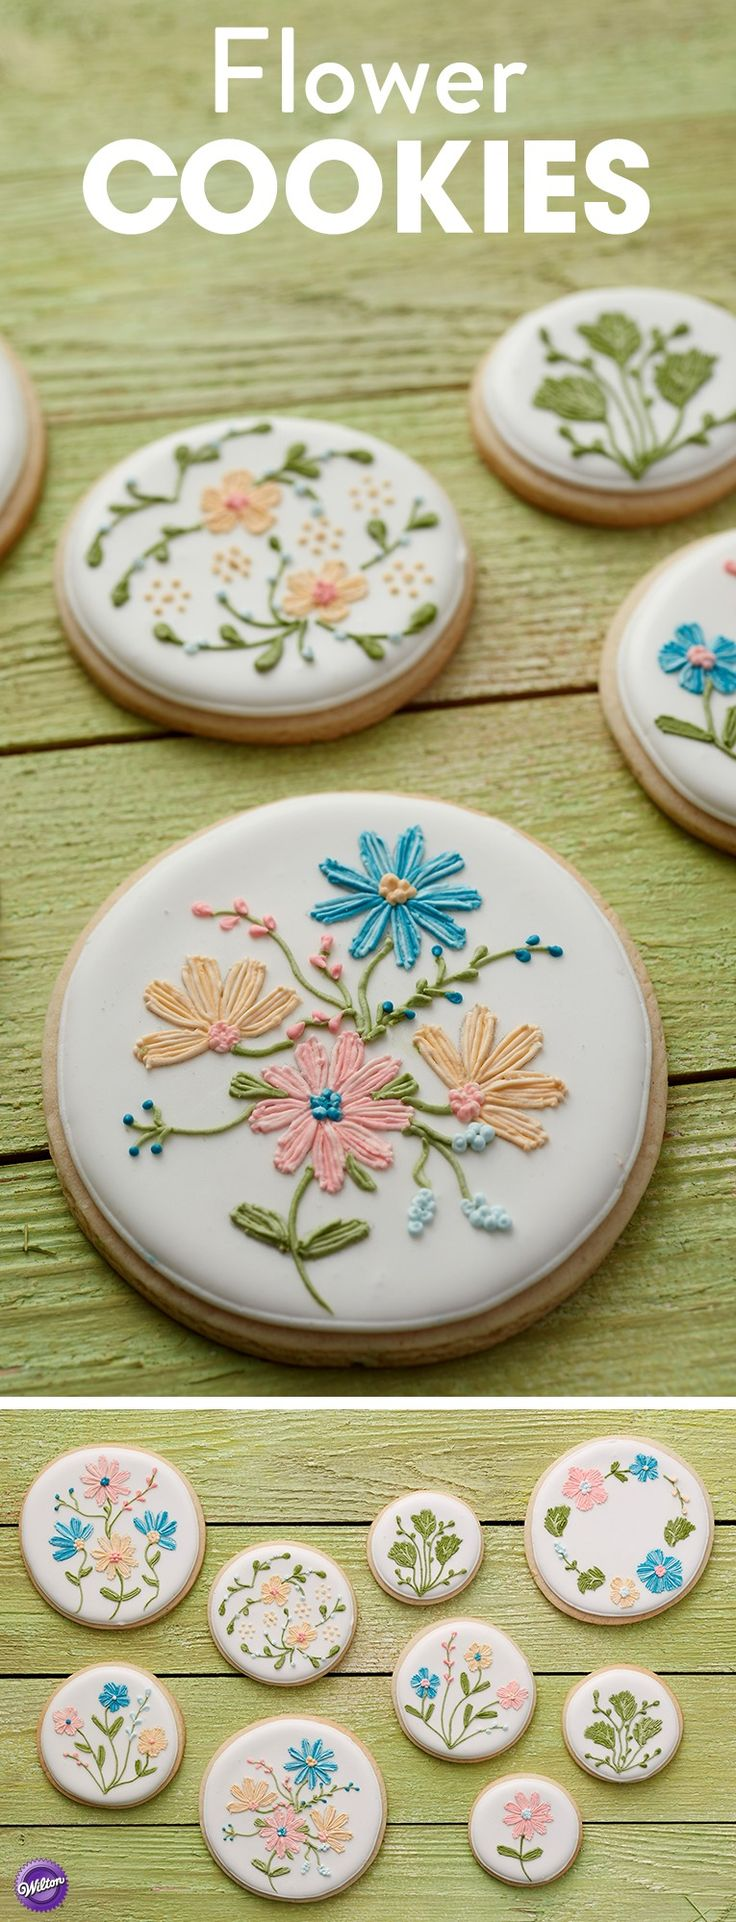 Learn how to make these pretty flower cookies that are perfect for wedding, shower or Mother's Day! The flower decorations are outlined using Wilton FoodWriter pens, so you know you'll get the perfect design every time. Stripe your decorating bags with shades of the same color icing to create a lovely stripe effect on your flowers that makes them look like they were plucked right from the garden!